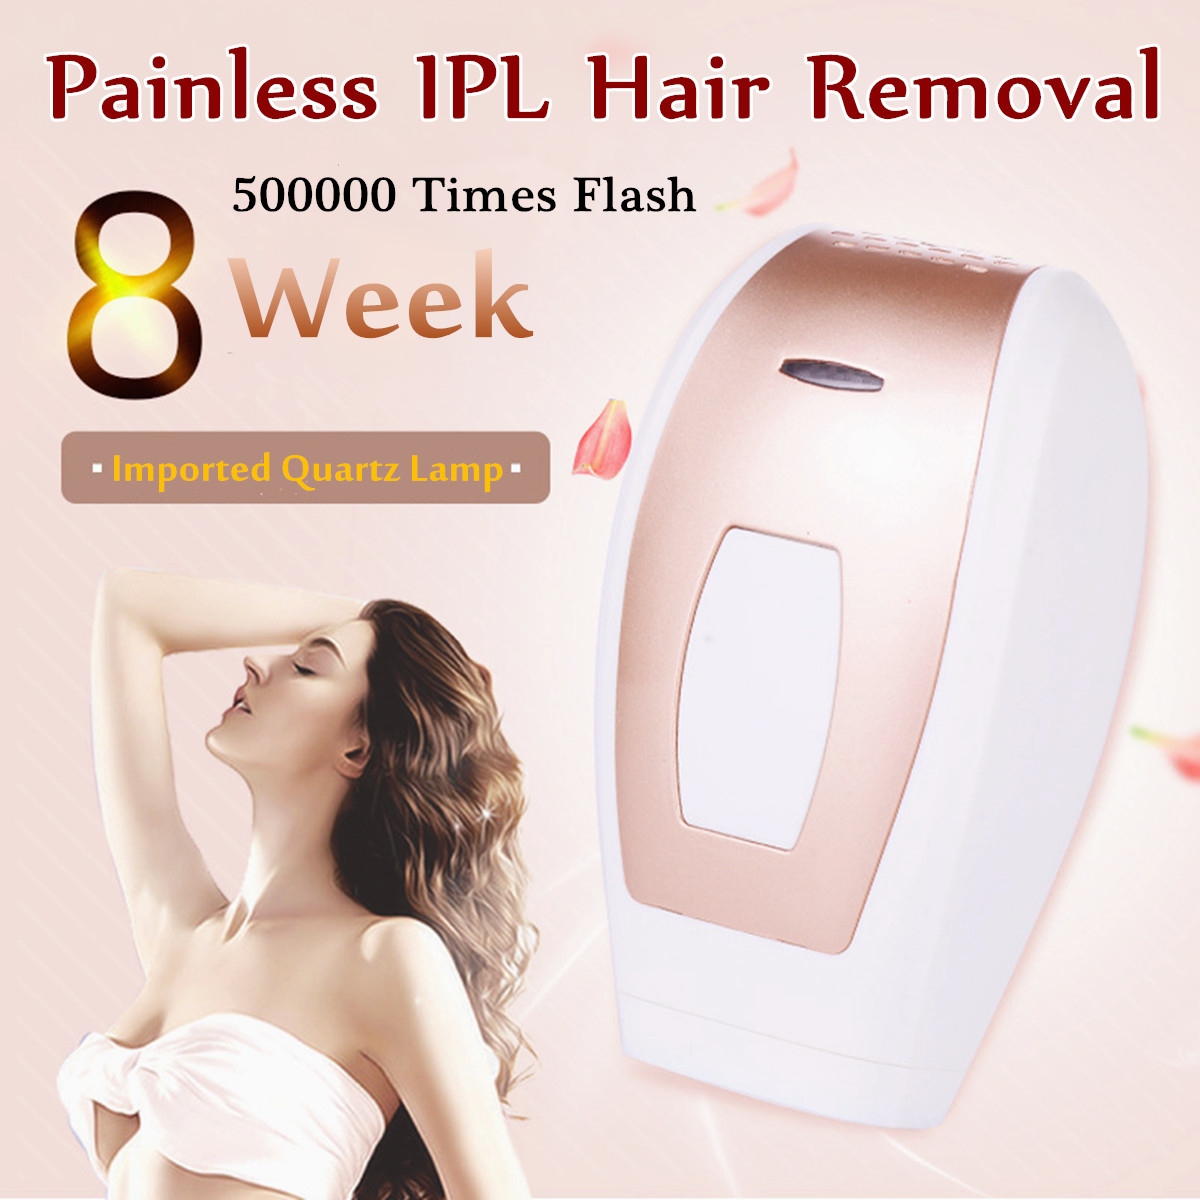 Laser IPL Epillator Hair Remover Lip Armpit Body Bikini Removal 500000 Flashes Painless Five Adjustable US/EU Plug Safe 110~240VLaser IPL Epillator Hair Remover Lip Armpit Body Bikini Removal 500000 Flashes Painless Five Adjustable US/EU Plug Safe 110~240V